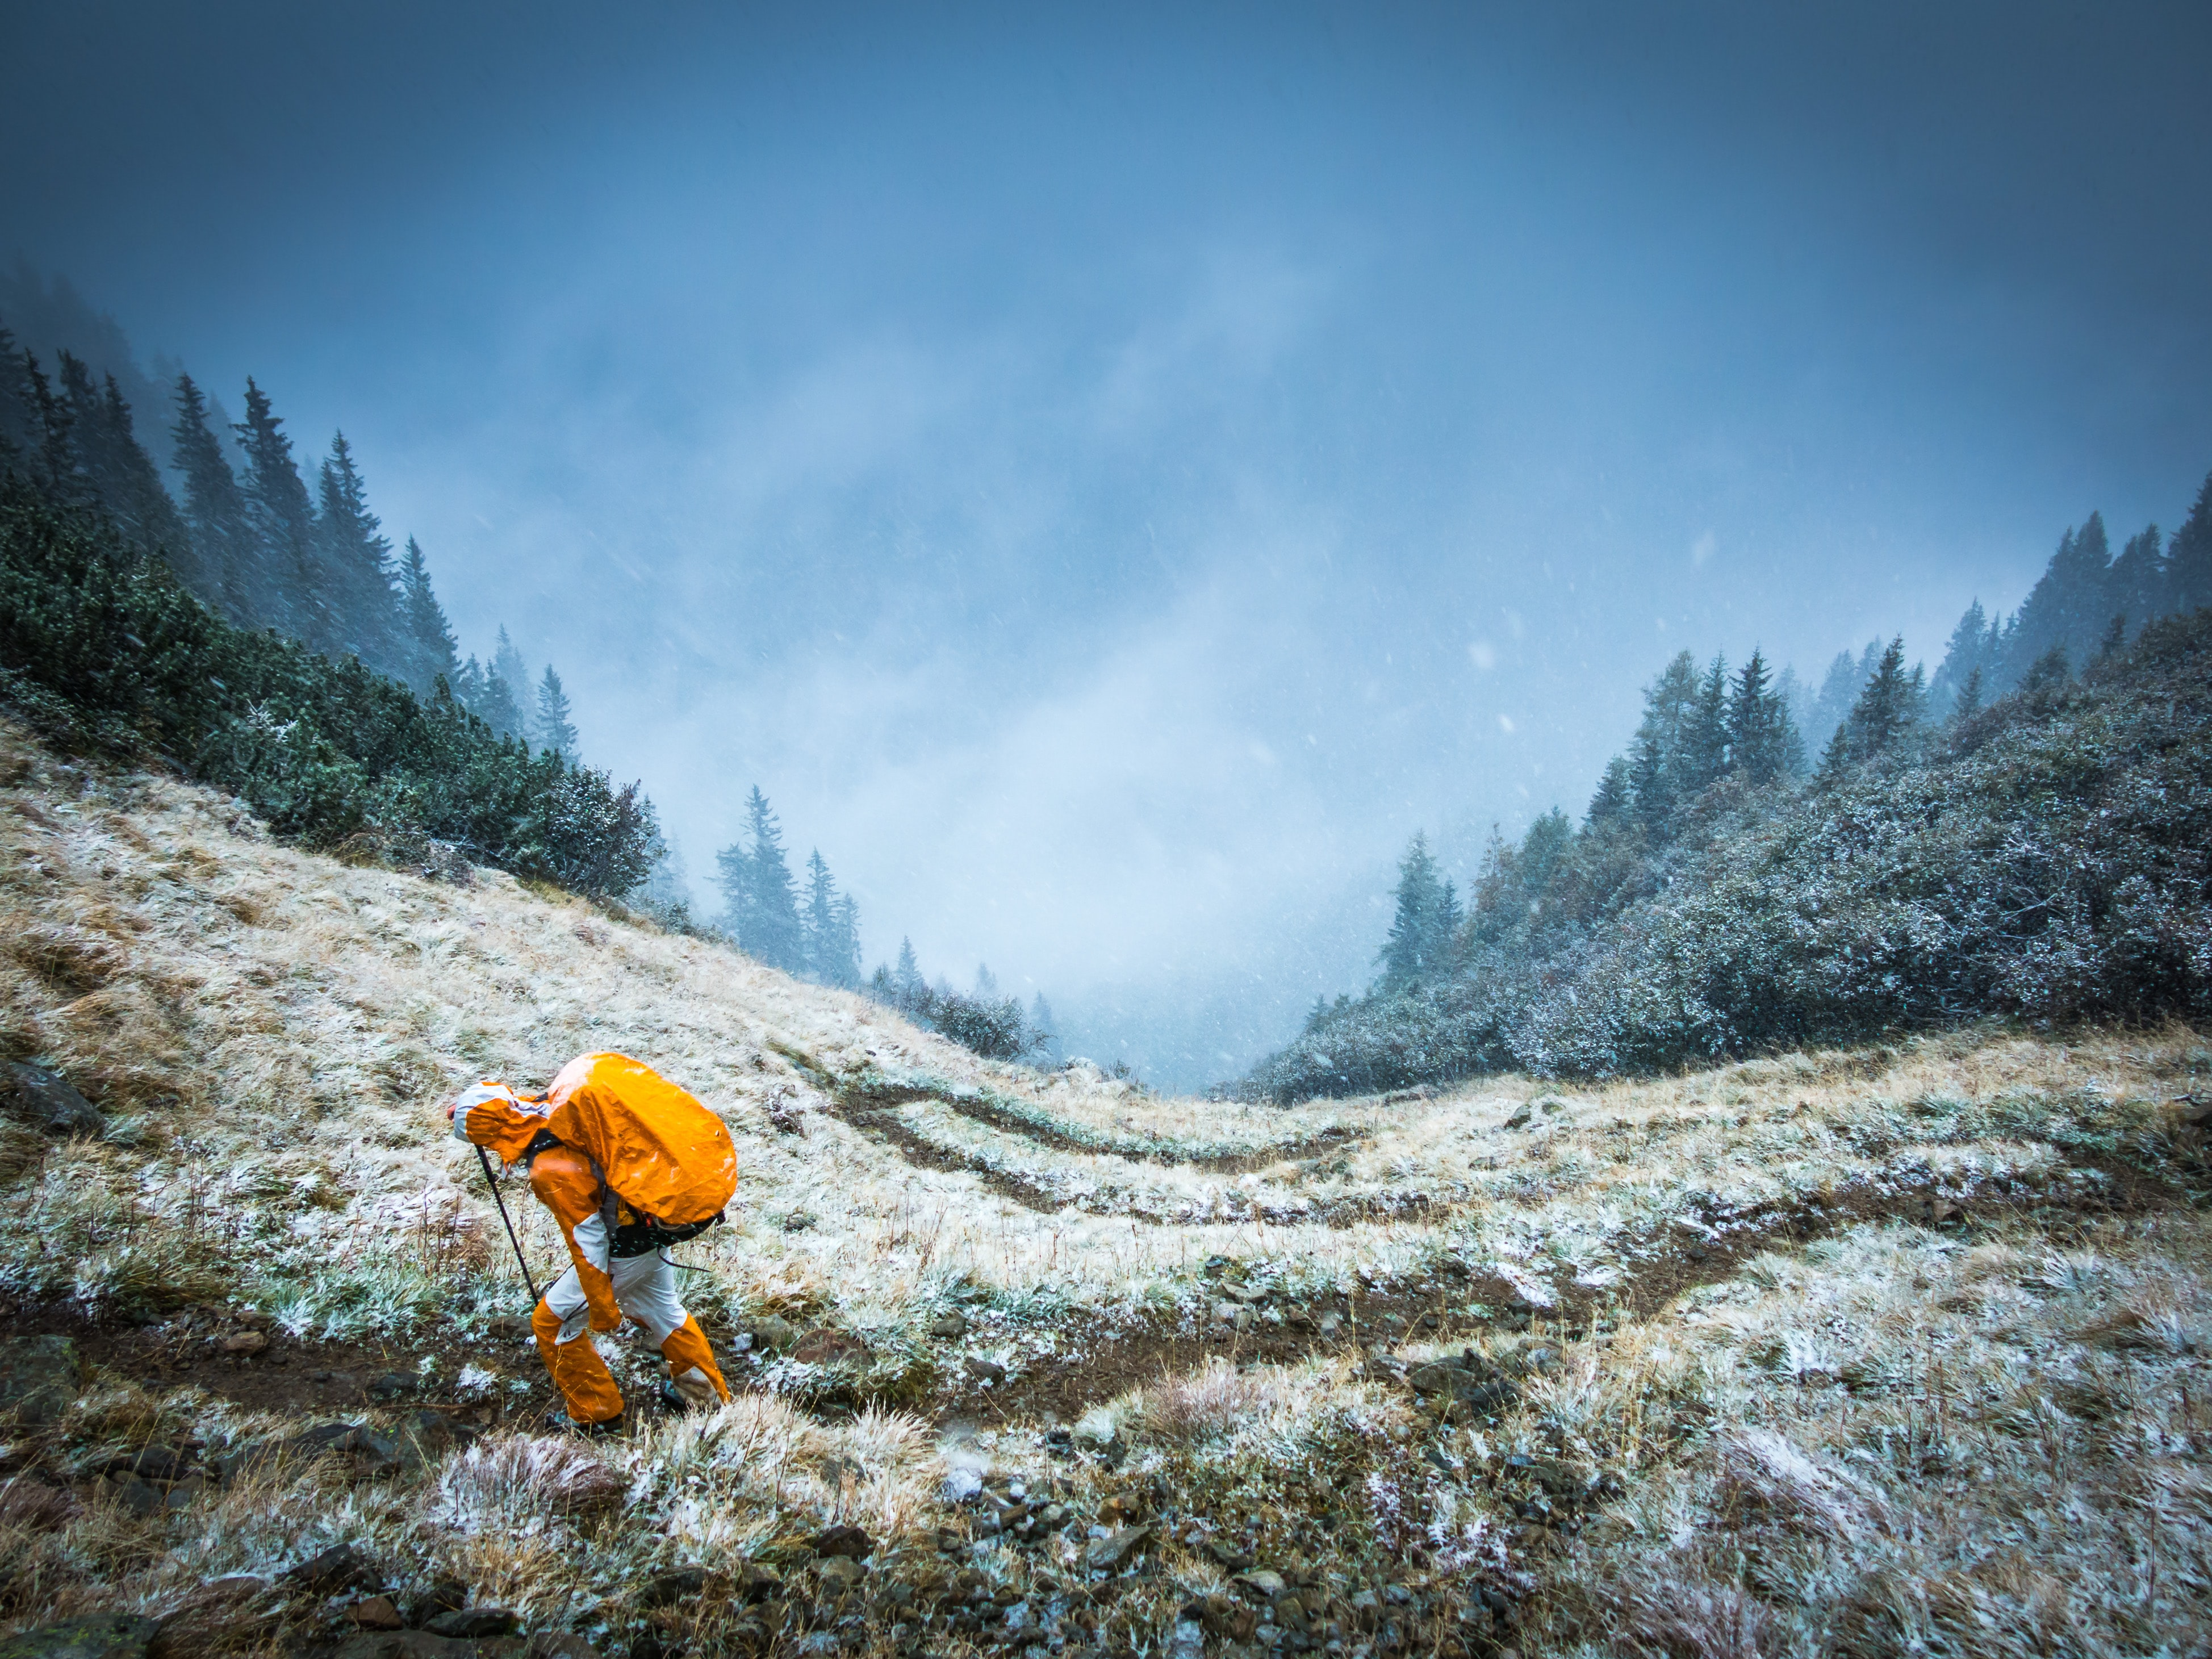 A mountaineer in bright orange clothes on a grassy slope in winter